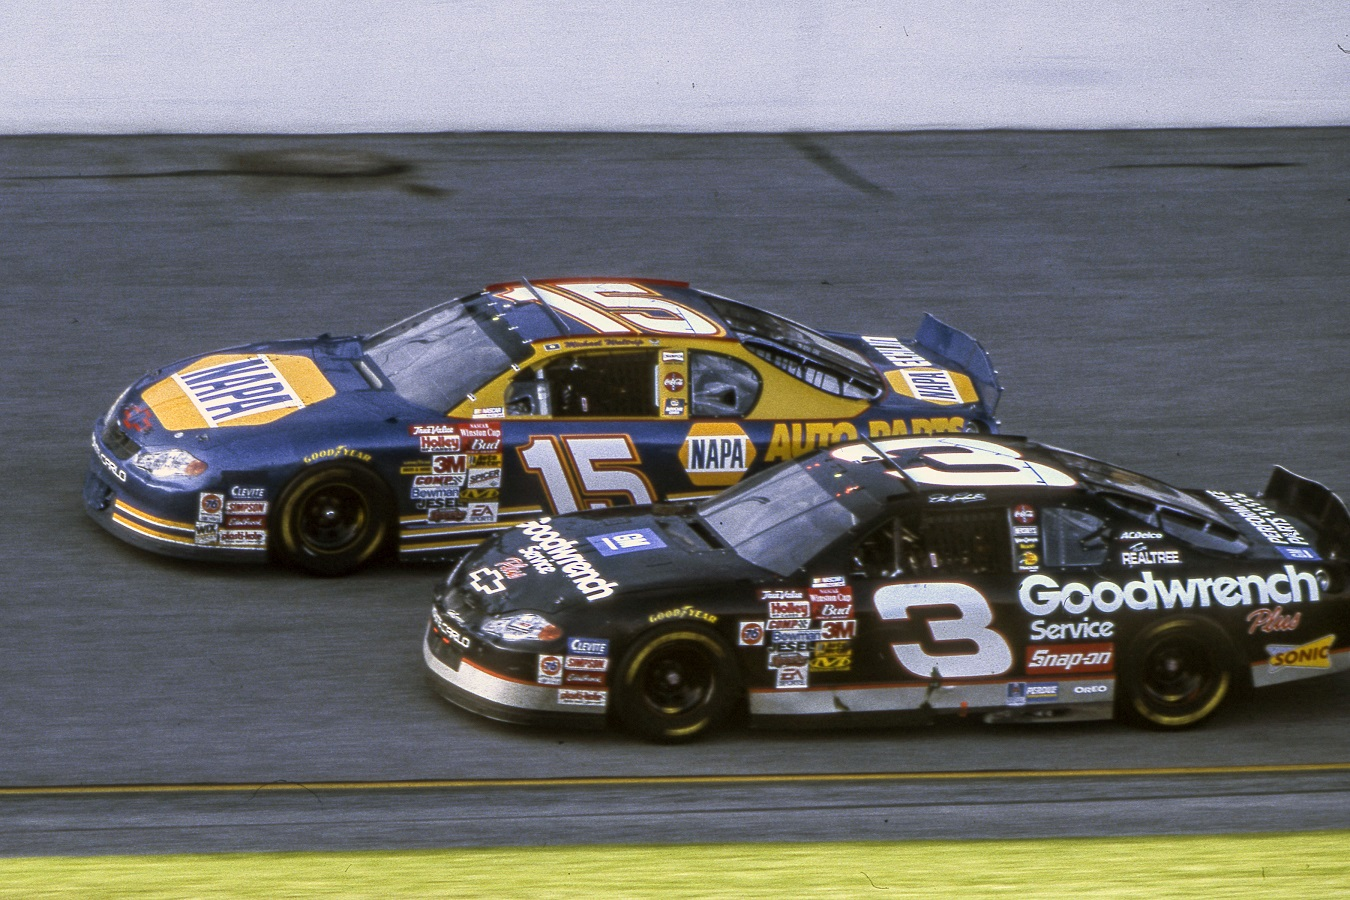 Dale Earnhardt (3) and Michael Waltrip (15) at the 2001 Daytona 500